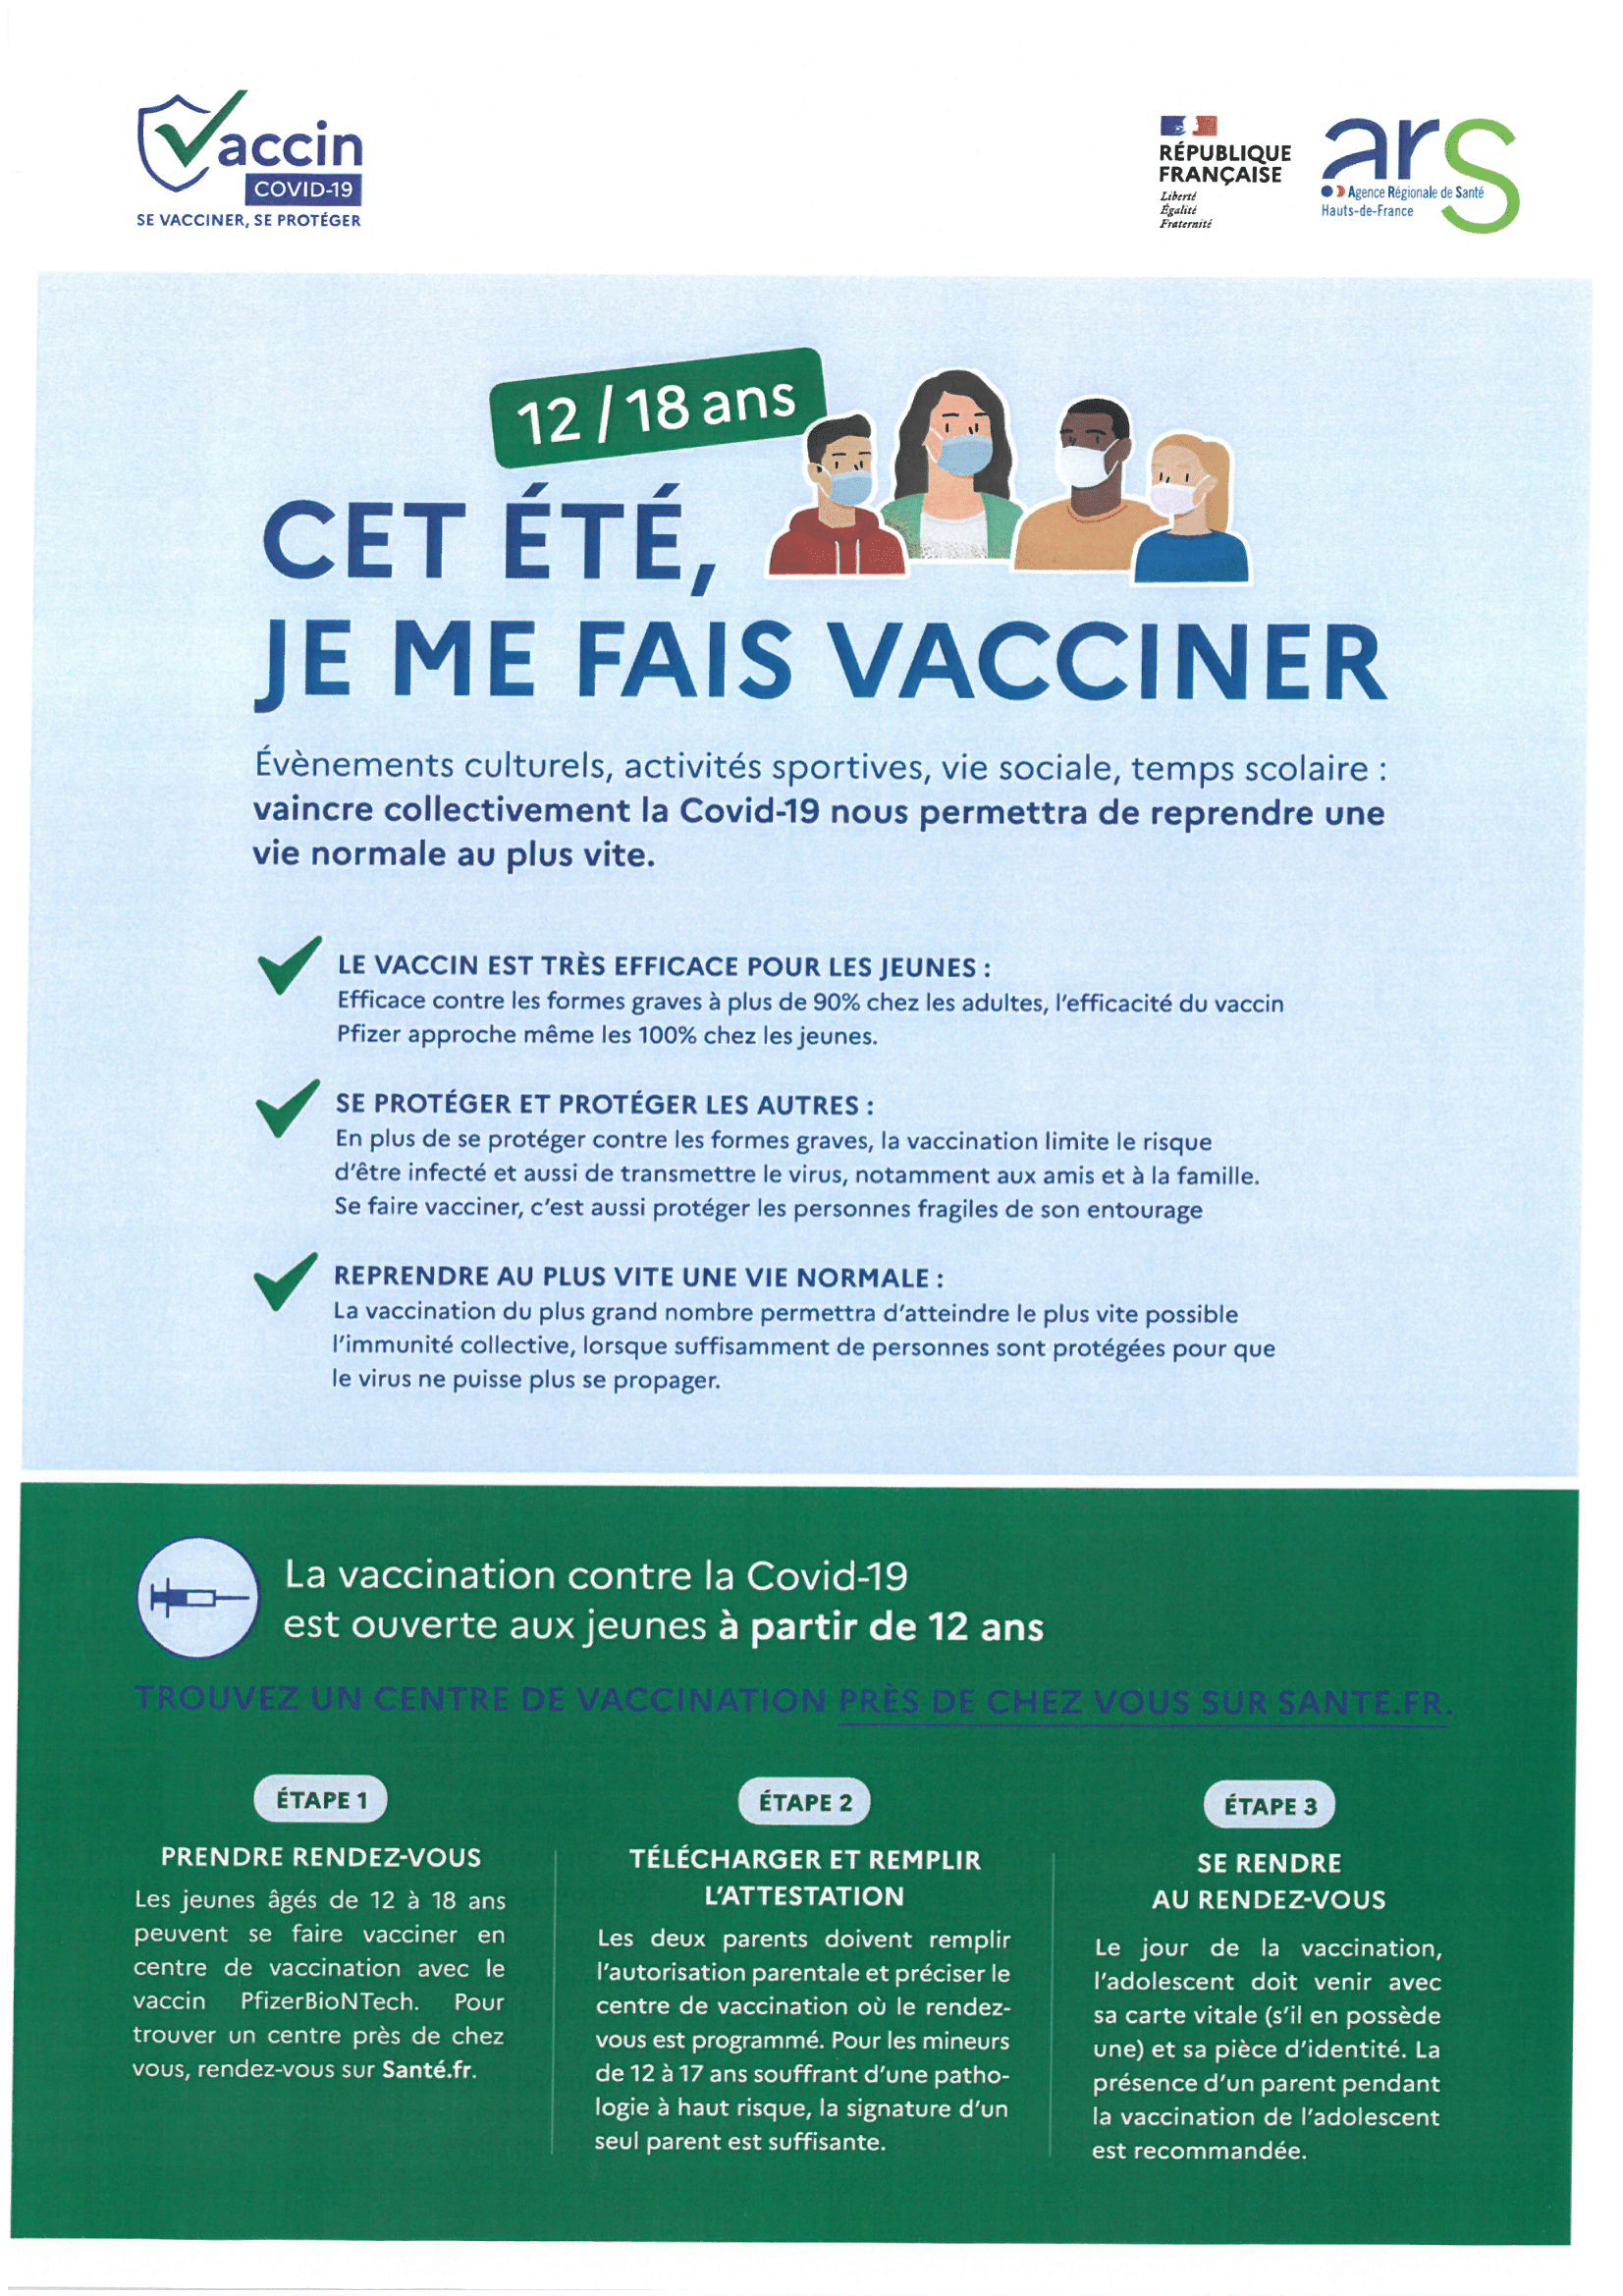 VACCINATION 12 18 ANS-1.png